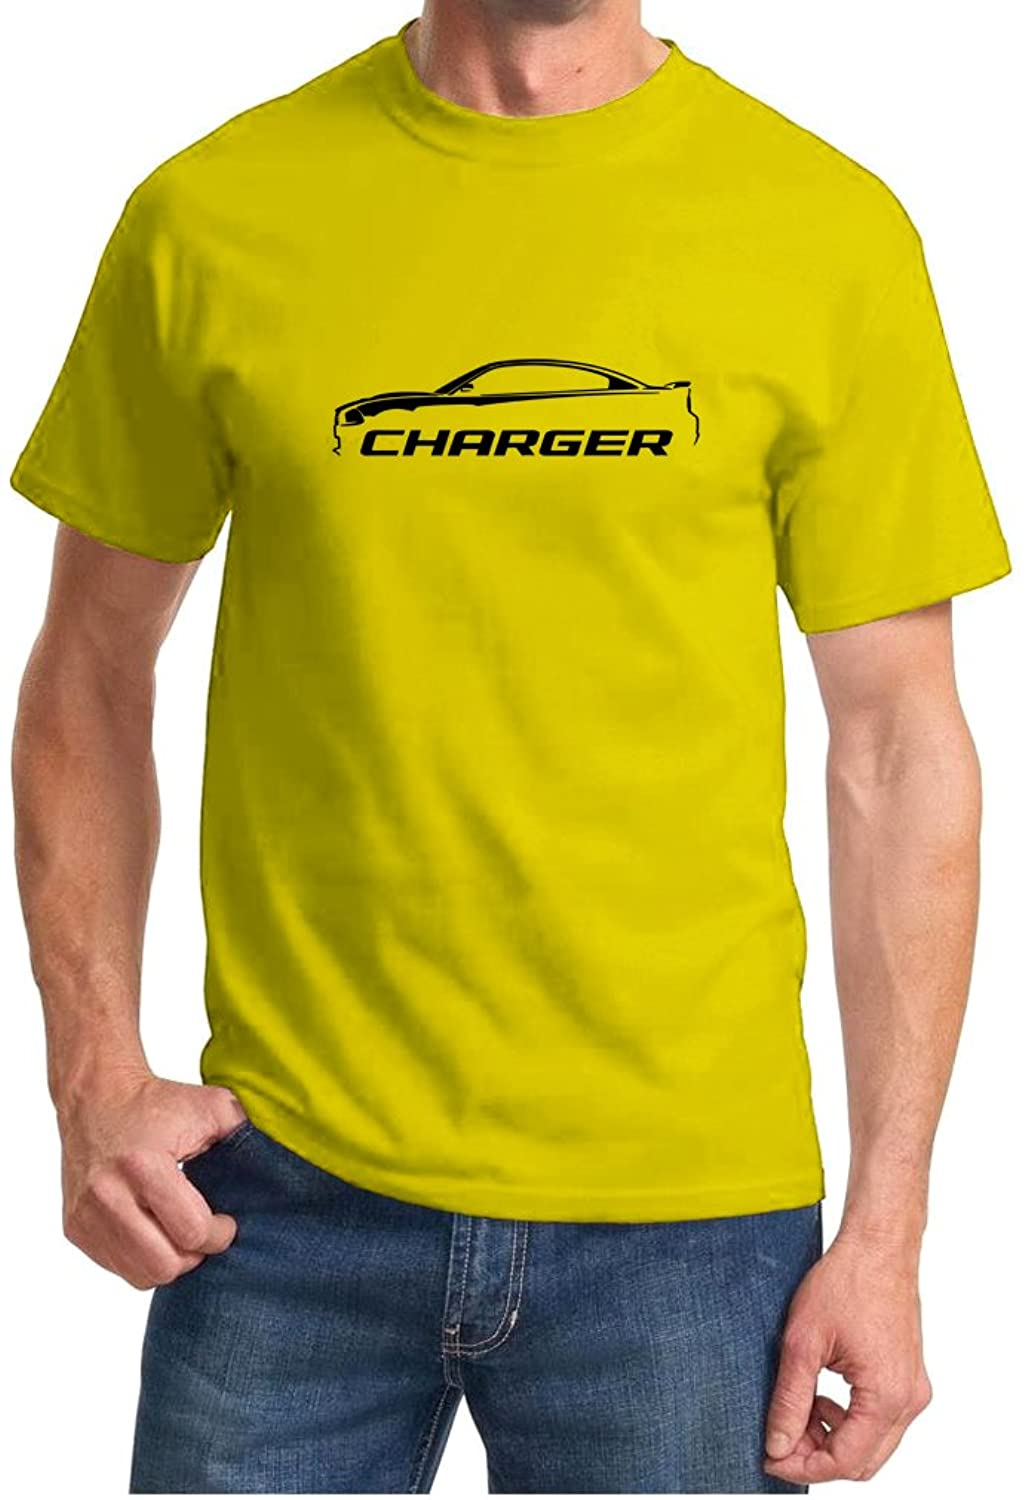 2010-14 Dodge Charger Classic Outline Design Tshirt small yellow